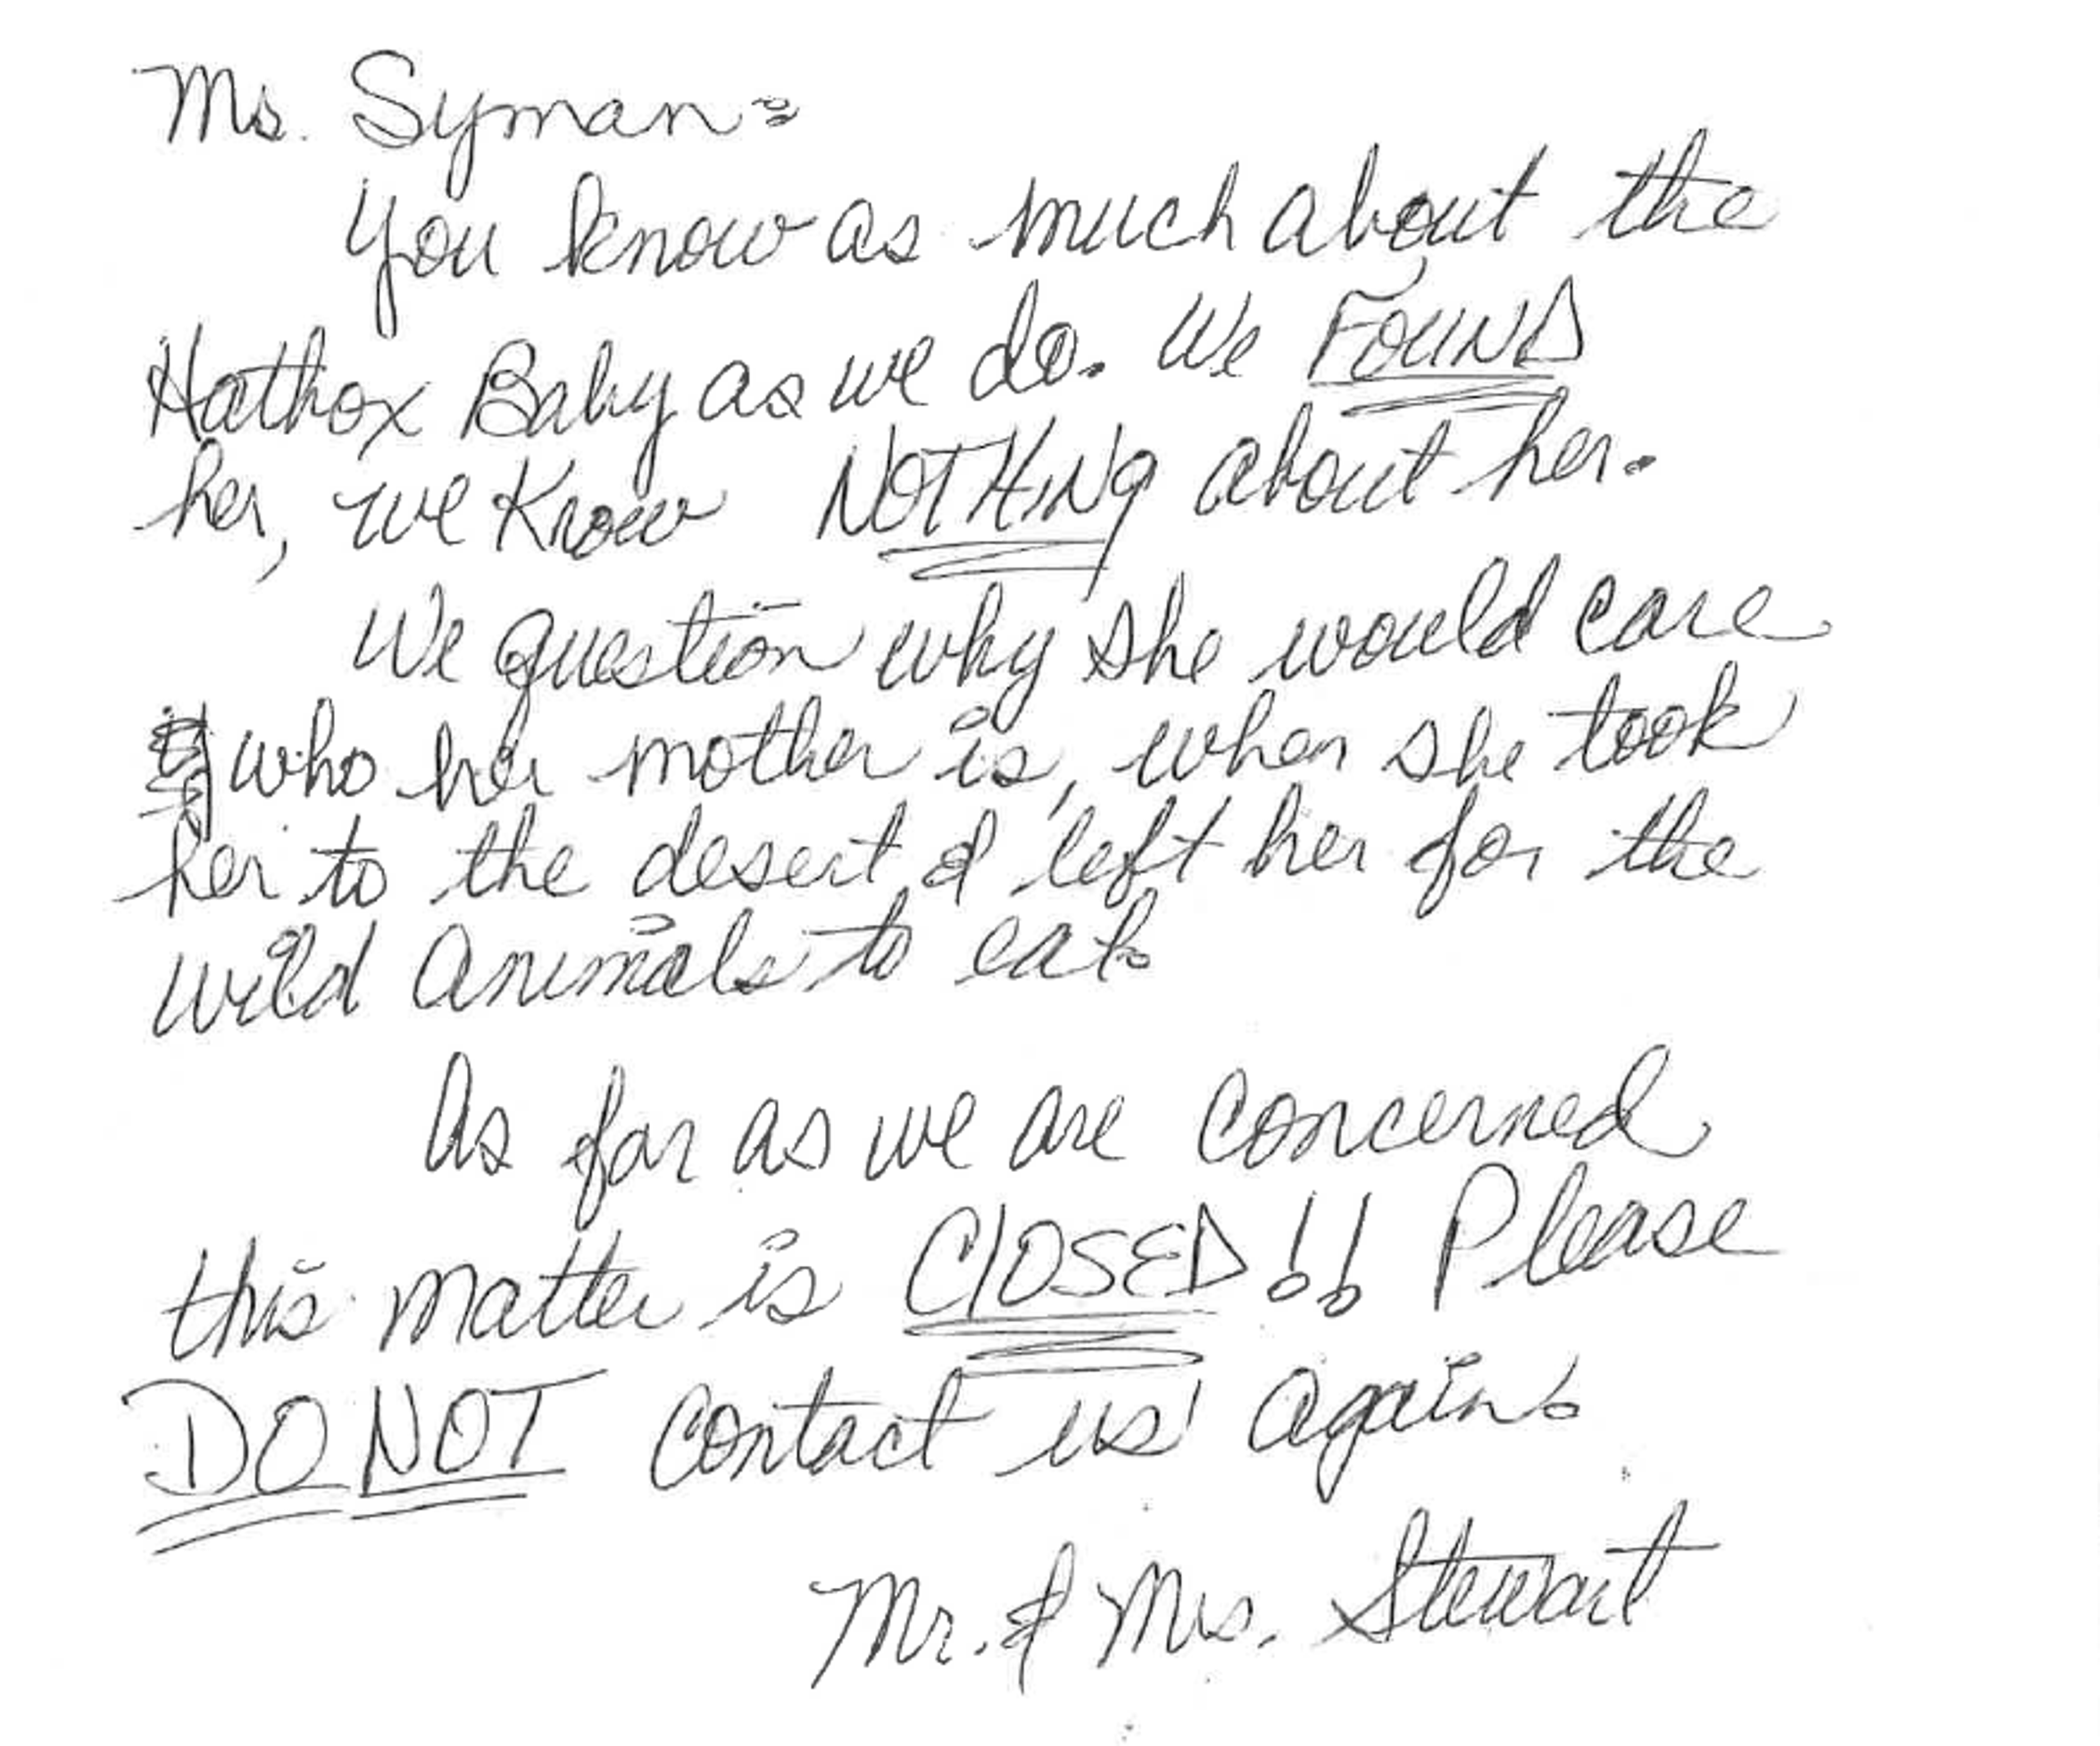 After an 'Unsolved Mysteries' episode on the Hatbox Baby case aired, private investigator Alice Syman wrote to the couple who found the baby in 1931, apologizing for the way they were depicted in the episode and asking them for any information they may have had. This letter is the Stewarts' response.